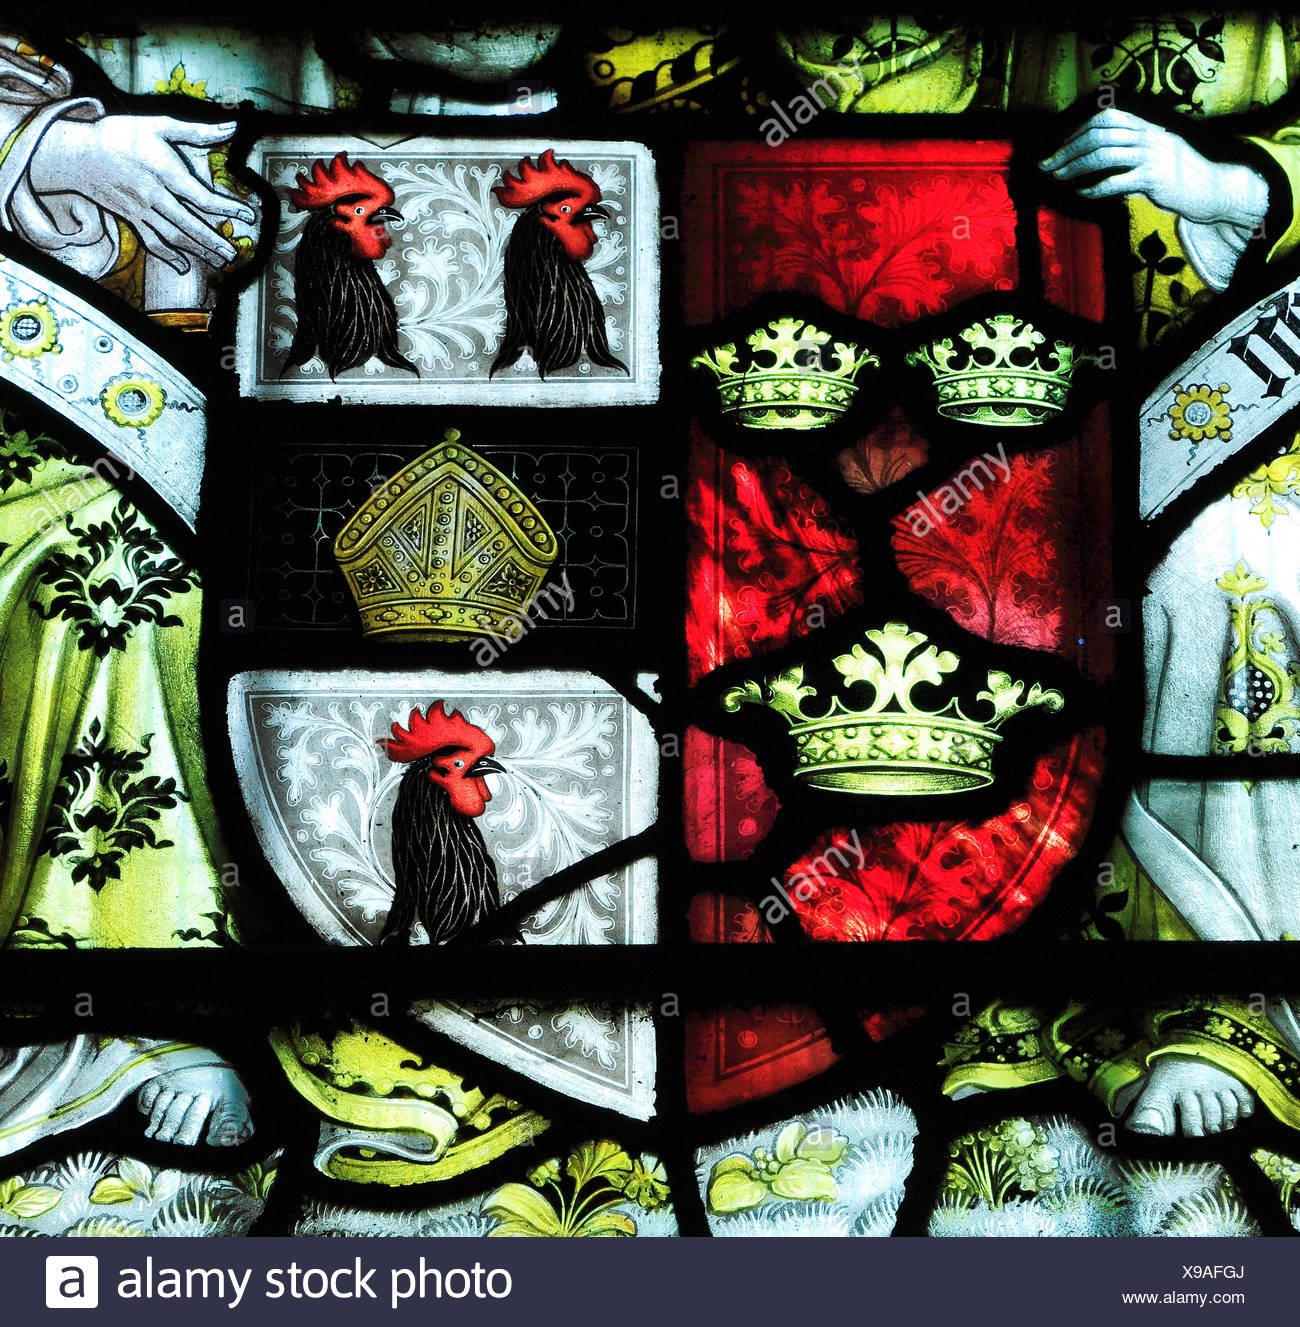 Ely Cathedral, arms of Bishop Alcock, stained glass window, heraldry heraldic cockerels English medieval bishops - Stock Image